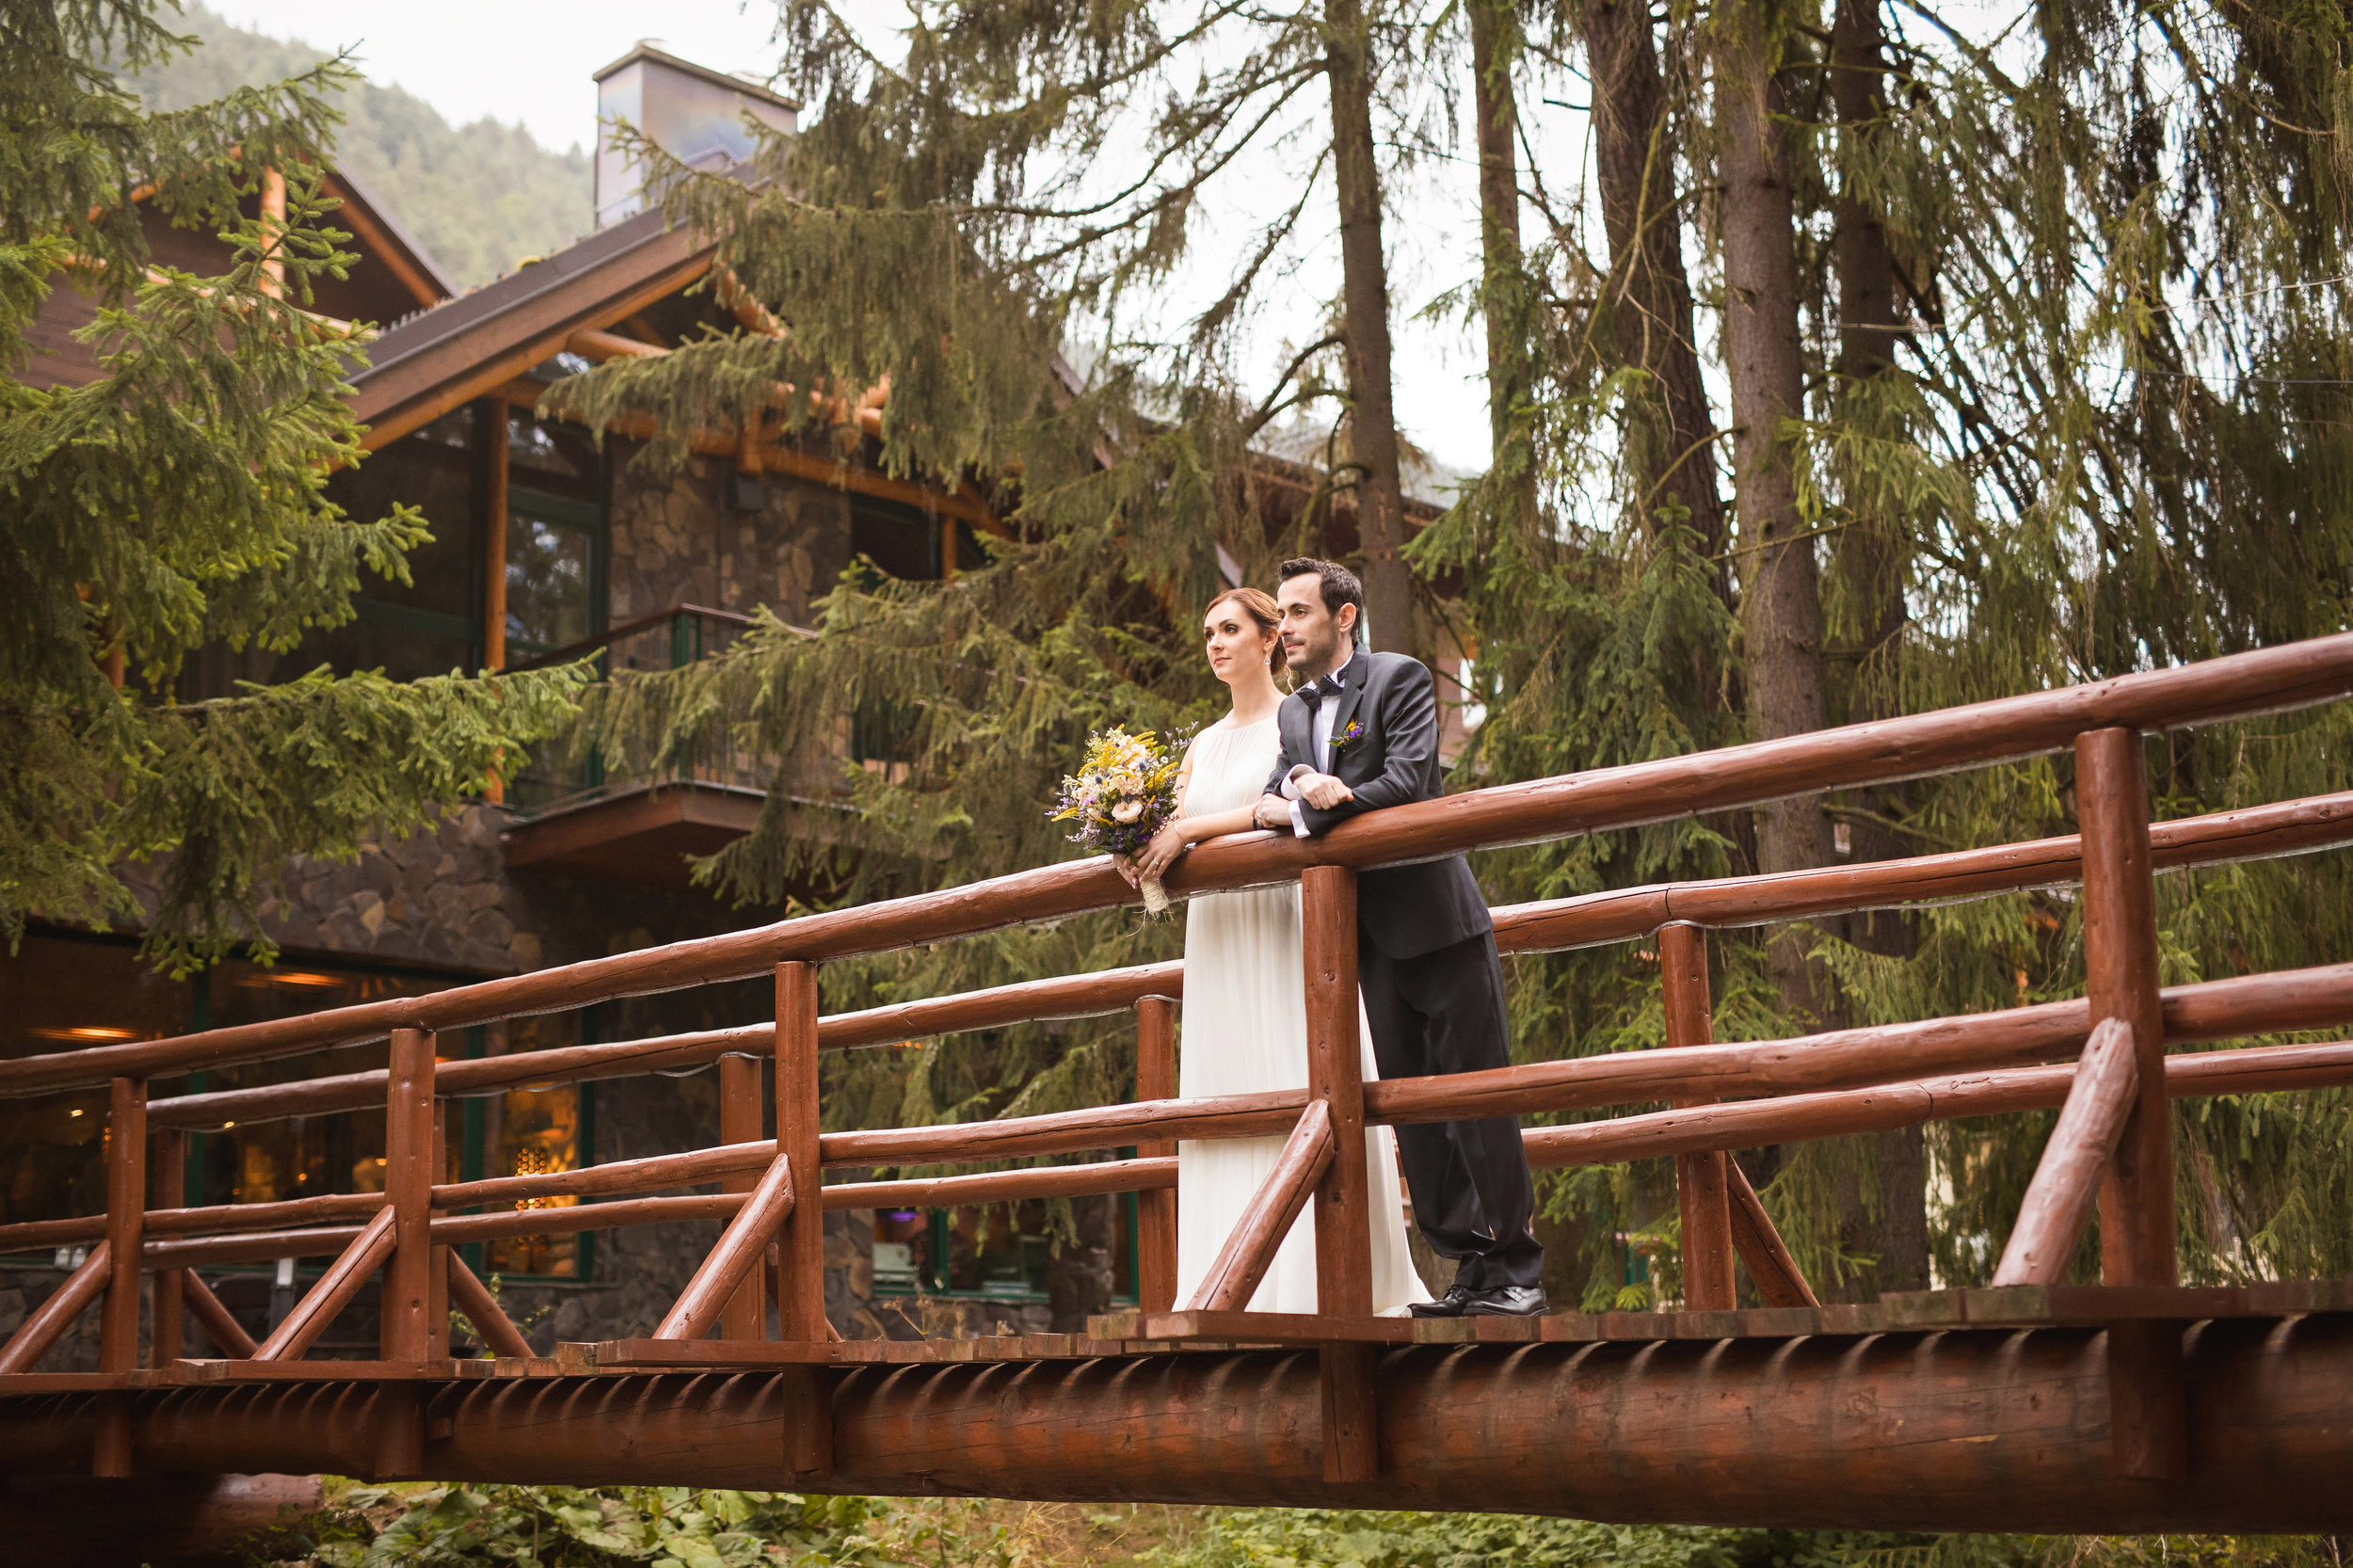 destination_wedding_photographer_ivan_bustor-859.jpg